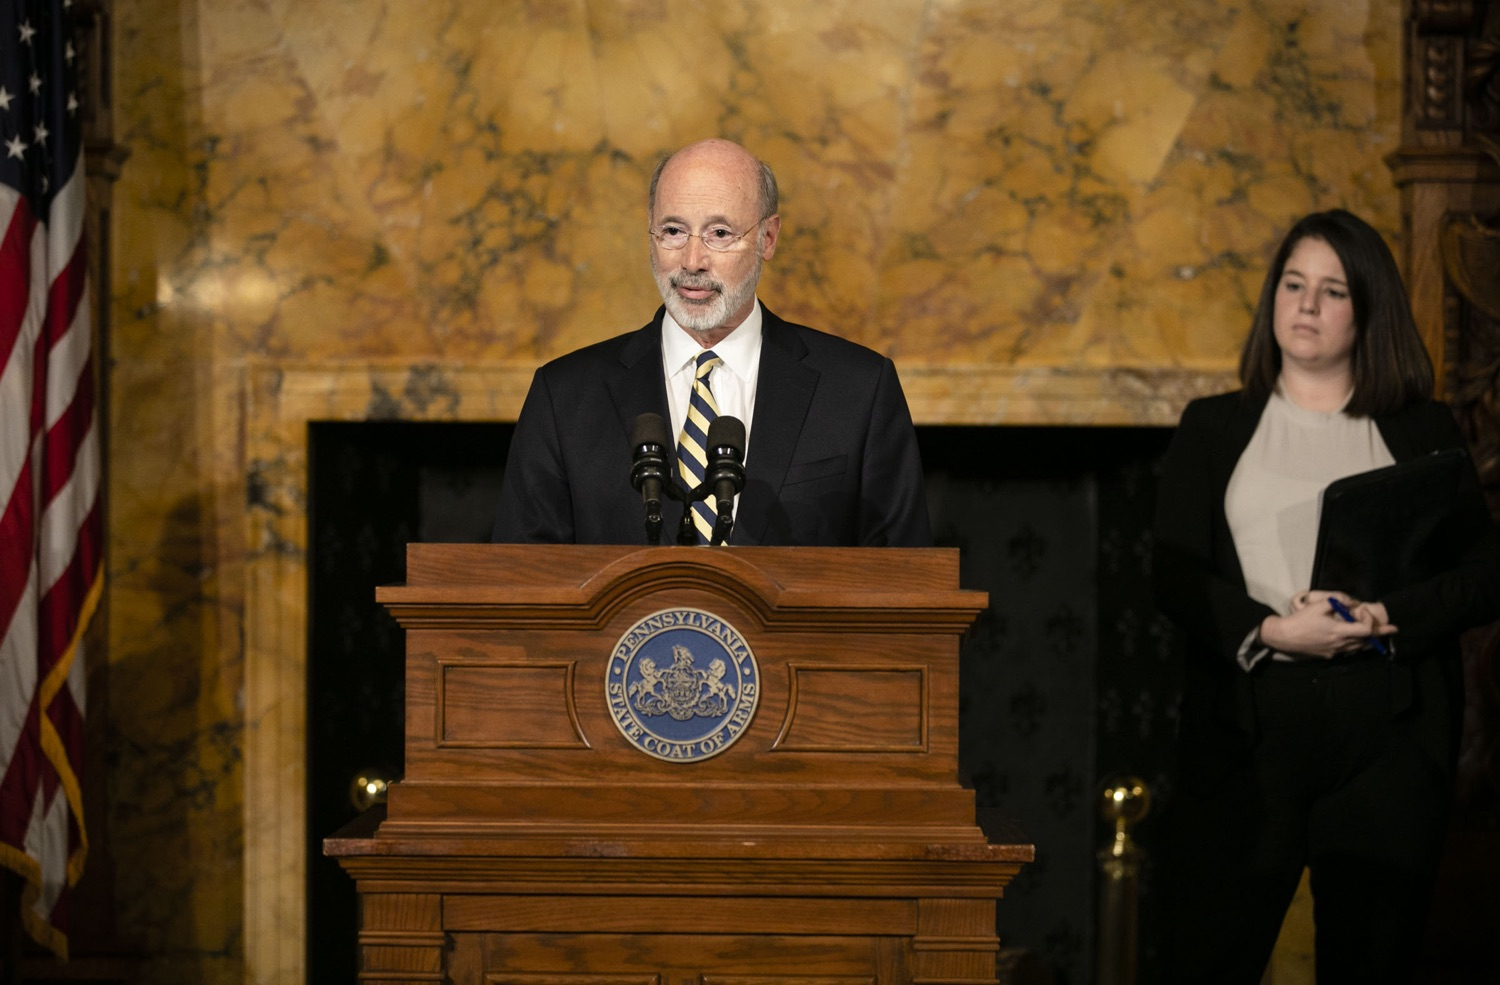 "<a href=""http://filesource.abacast.com/commonwealthofpa/photo/17564_GOV_aca_amb_004.jpg"" target=""_blank"">⇣ Download Photo<br></a>Governor Tom Wolf and Insurance Commissioner Jessica Altman advised Pennsylvanians that now is the time to buy health insurance on the federal exchange, healthcare.gov, as open enrollment continues for Affordable Care Act (ACA) plans through Dec. 15. Consumers have more options in Pennsylvania, and many will find they qualify for subsidies. November 7, 2019. Harrisburg, PA."